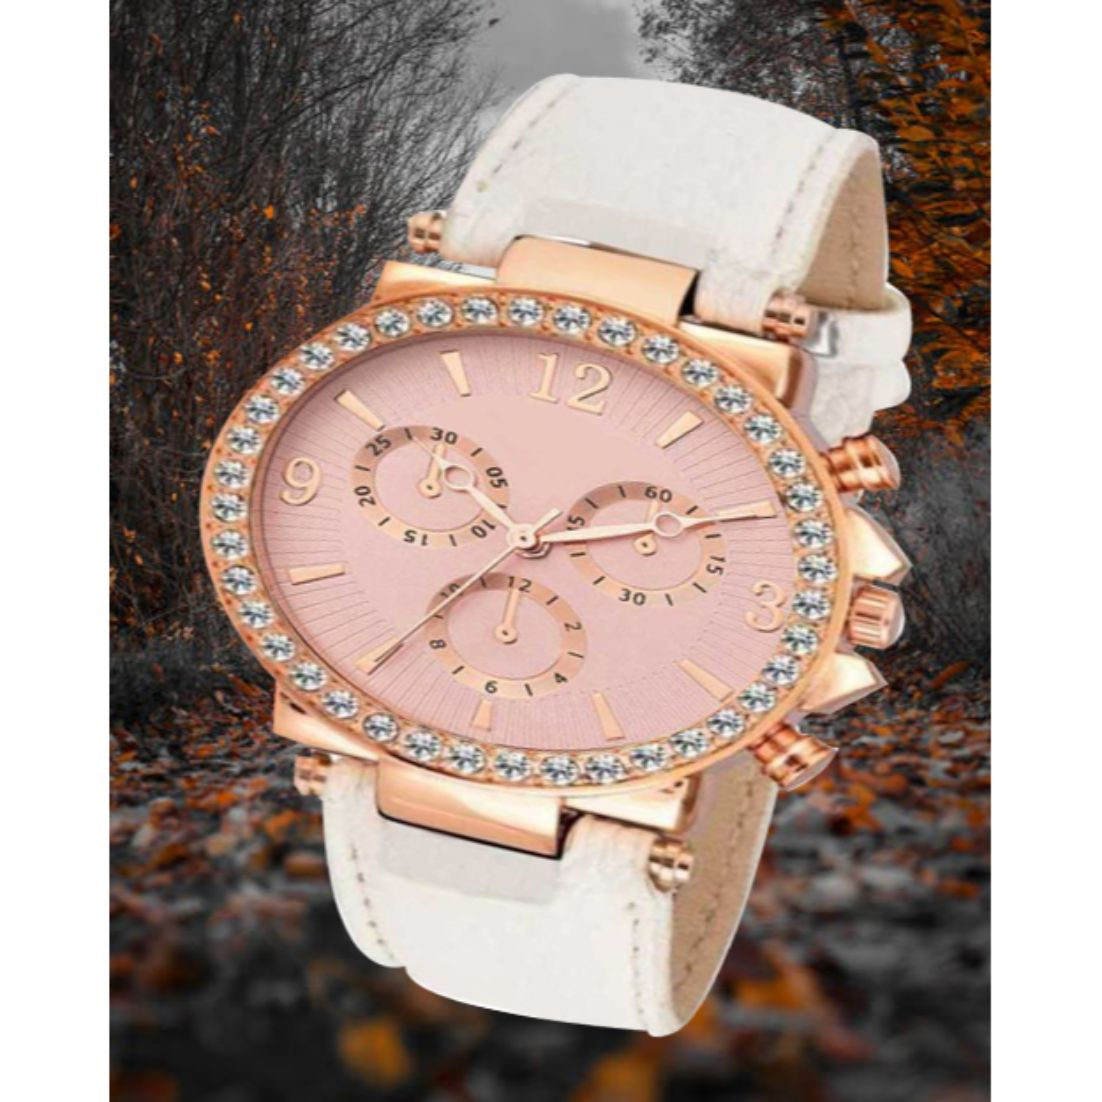 HRV Crono Pink Dial White Belt Leather Fancy Collection Women Watch